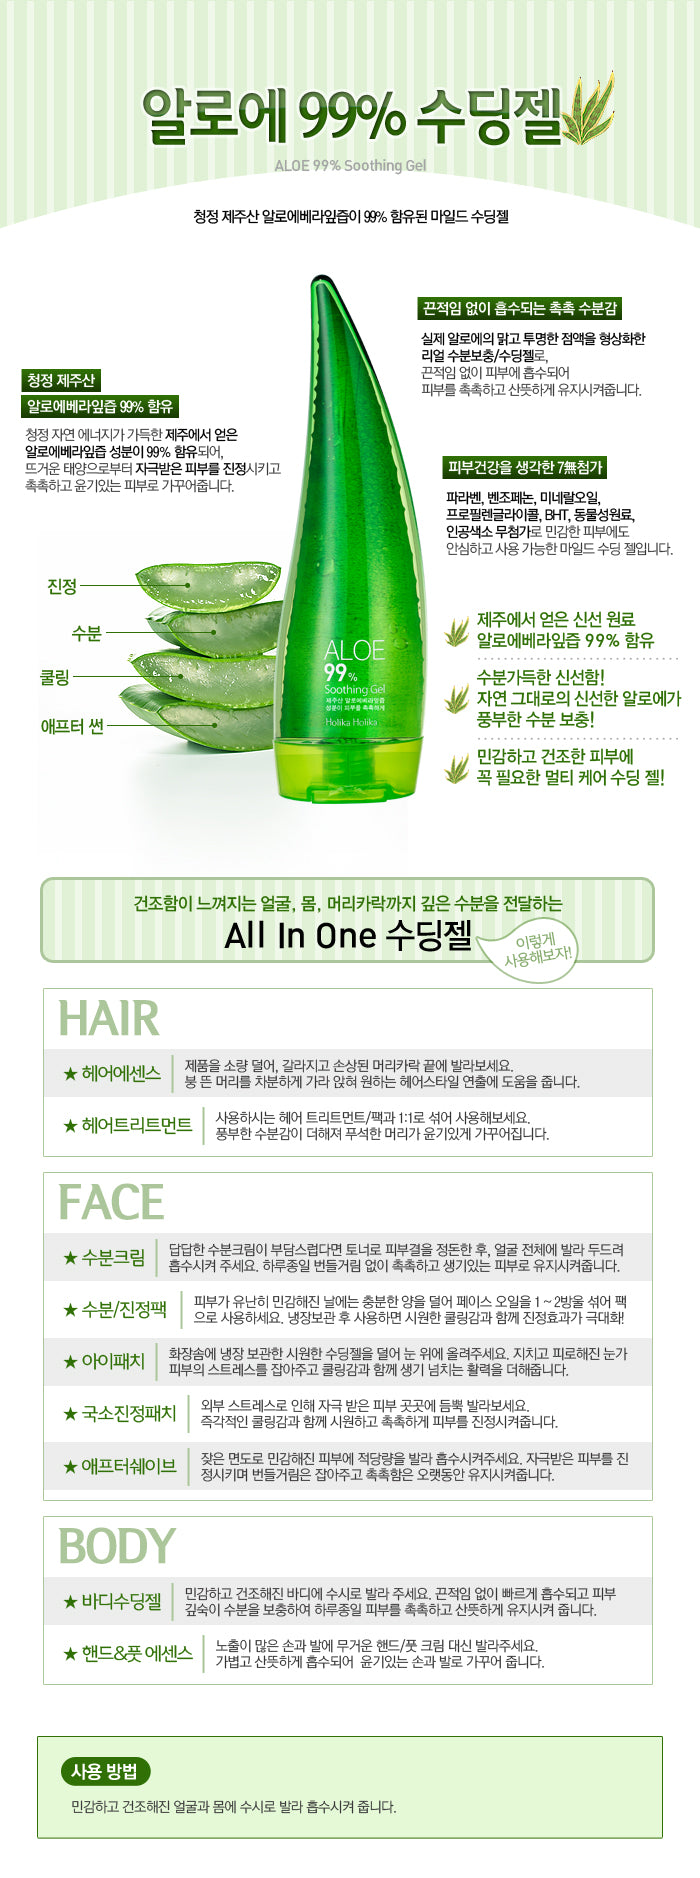 Holika Holika 99% Aloe Soothing Gel